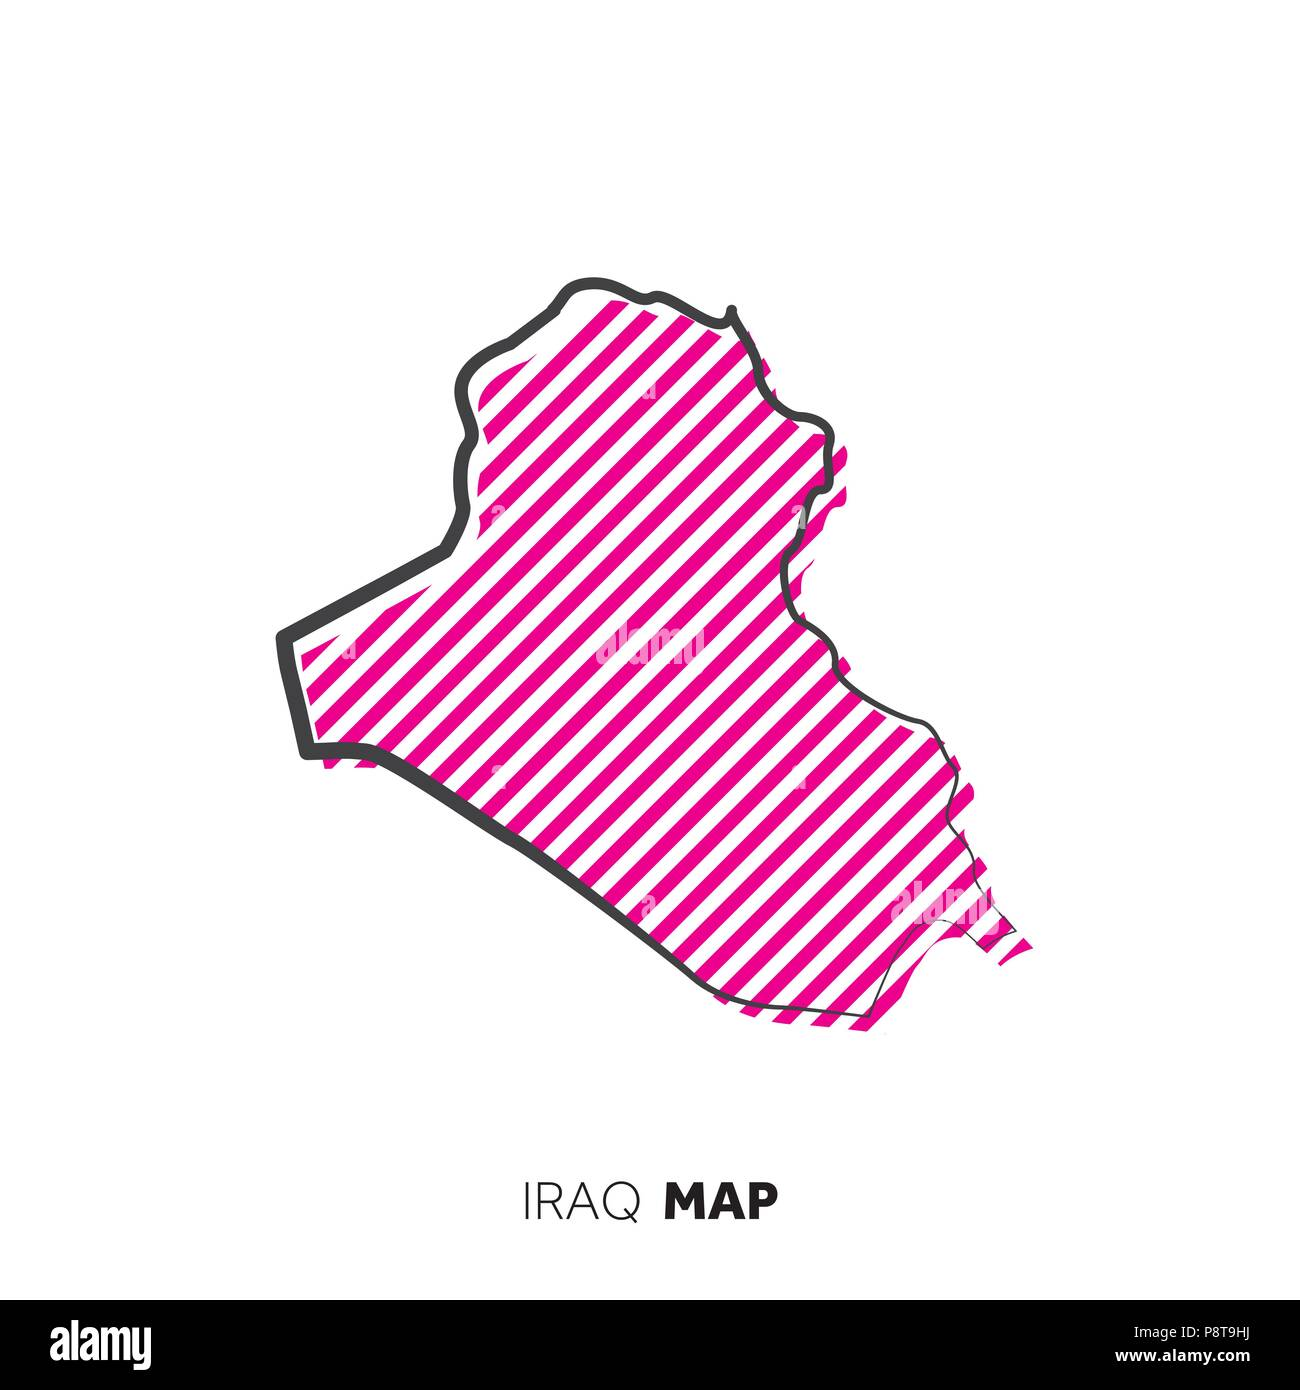 Iraq vector country map  Map outline with dots Stock Vector Art